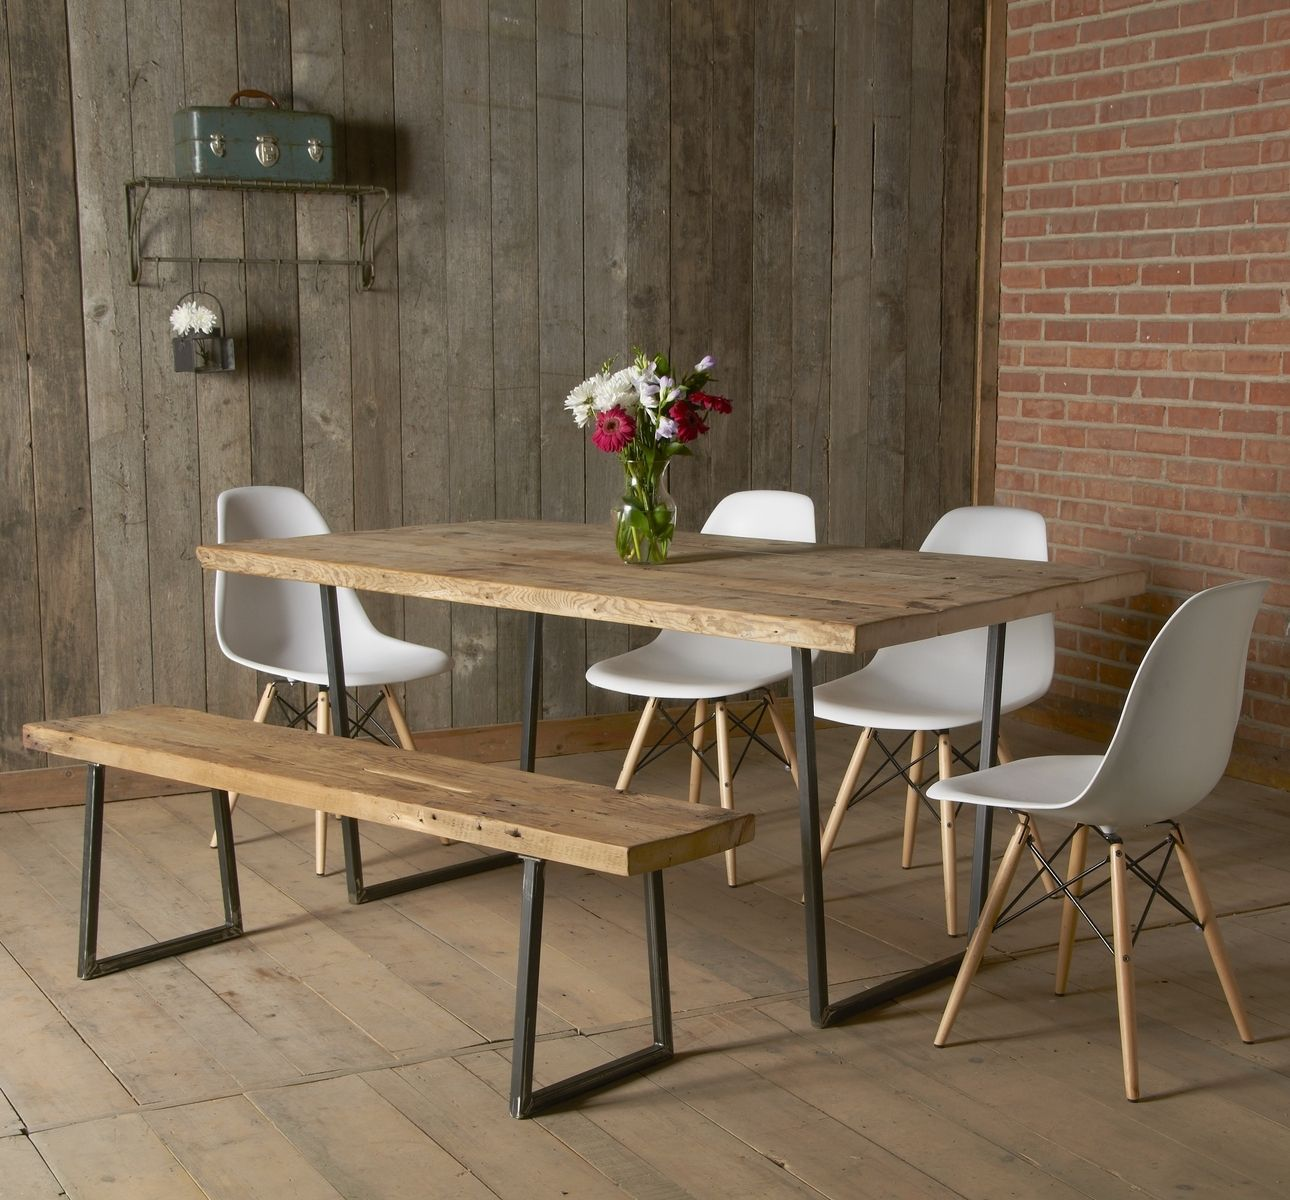 Buy A Custom Made Brooklyn Modern Rustic Reclaimed Wood Dining Table